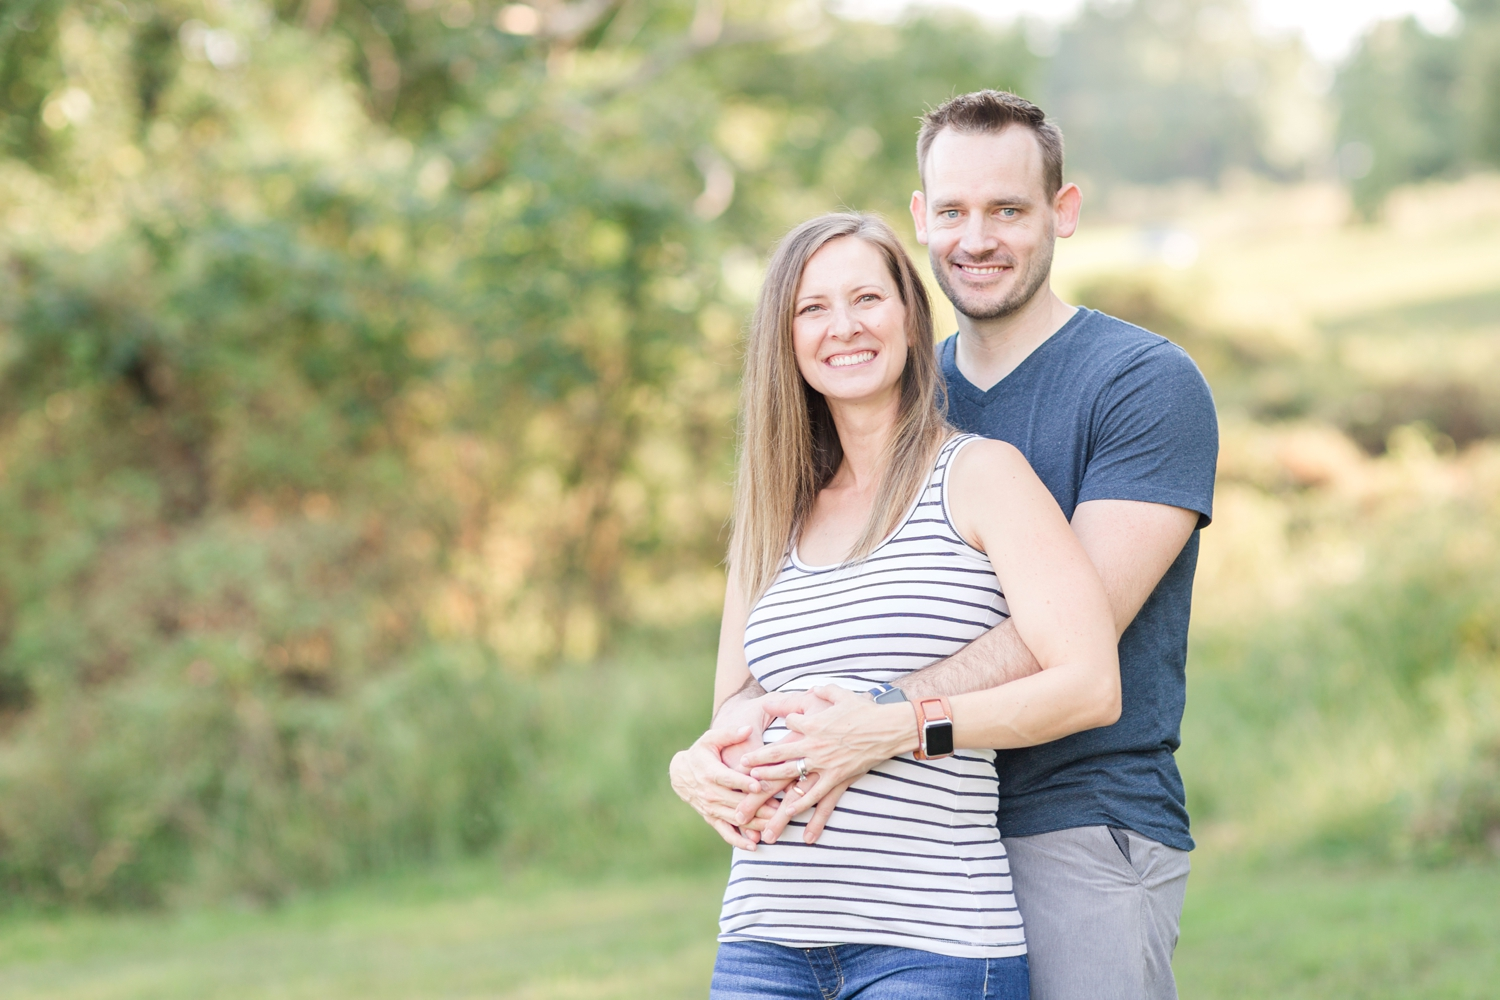 Everhart Maternity-71_Centennial-Park-Maryland-family-maternity-photographer-anna-grace-photography-photo.jpg